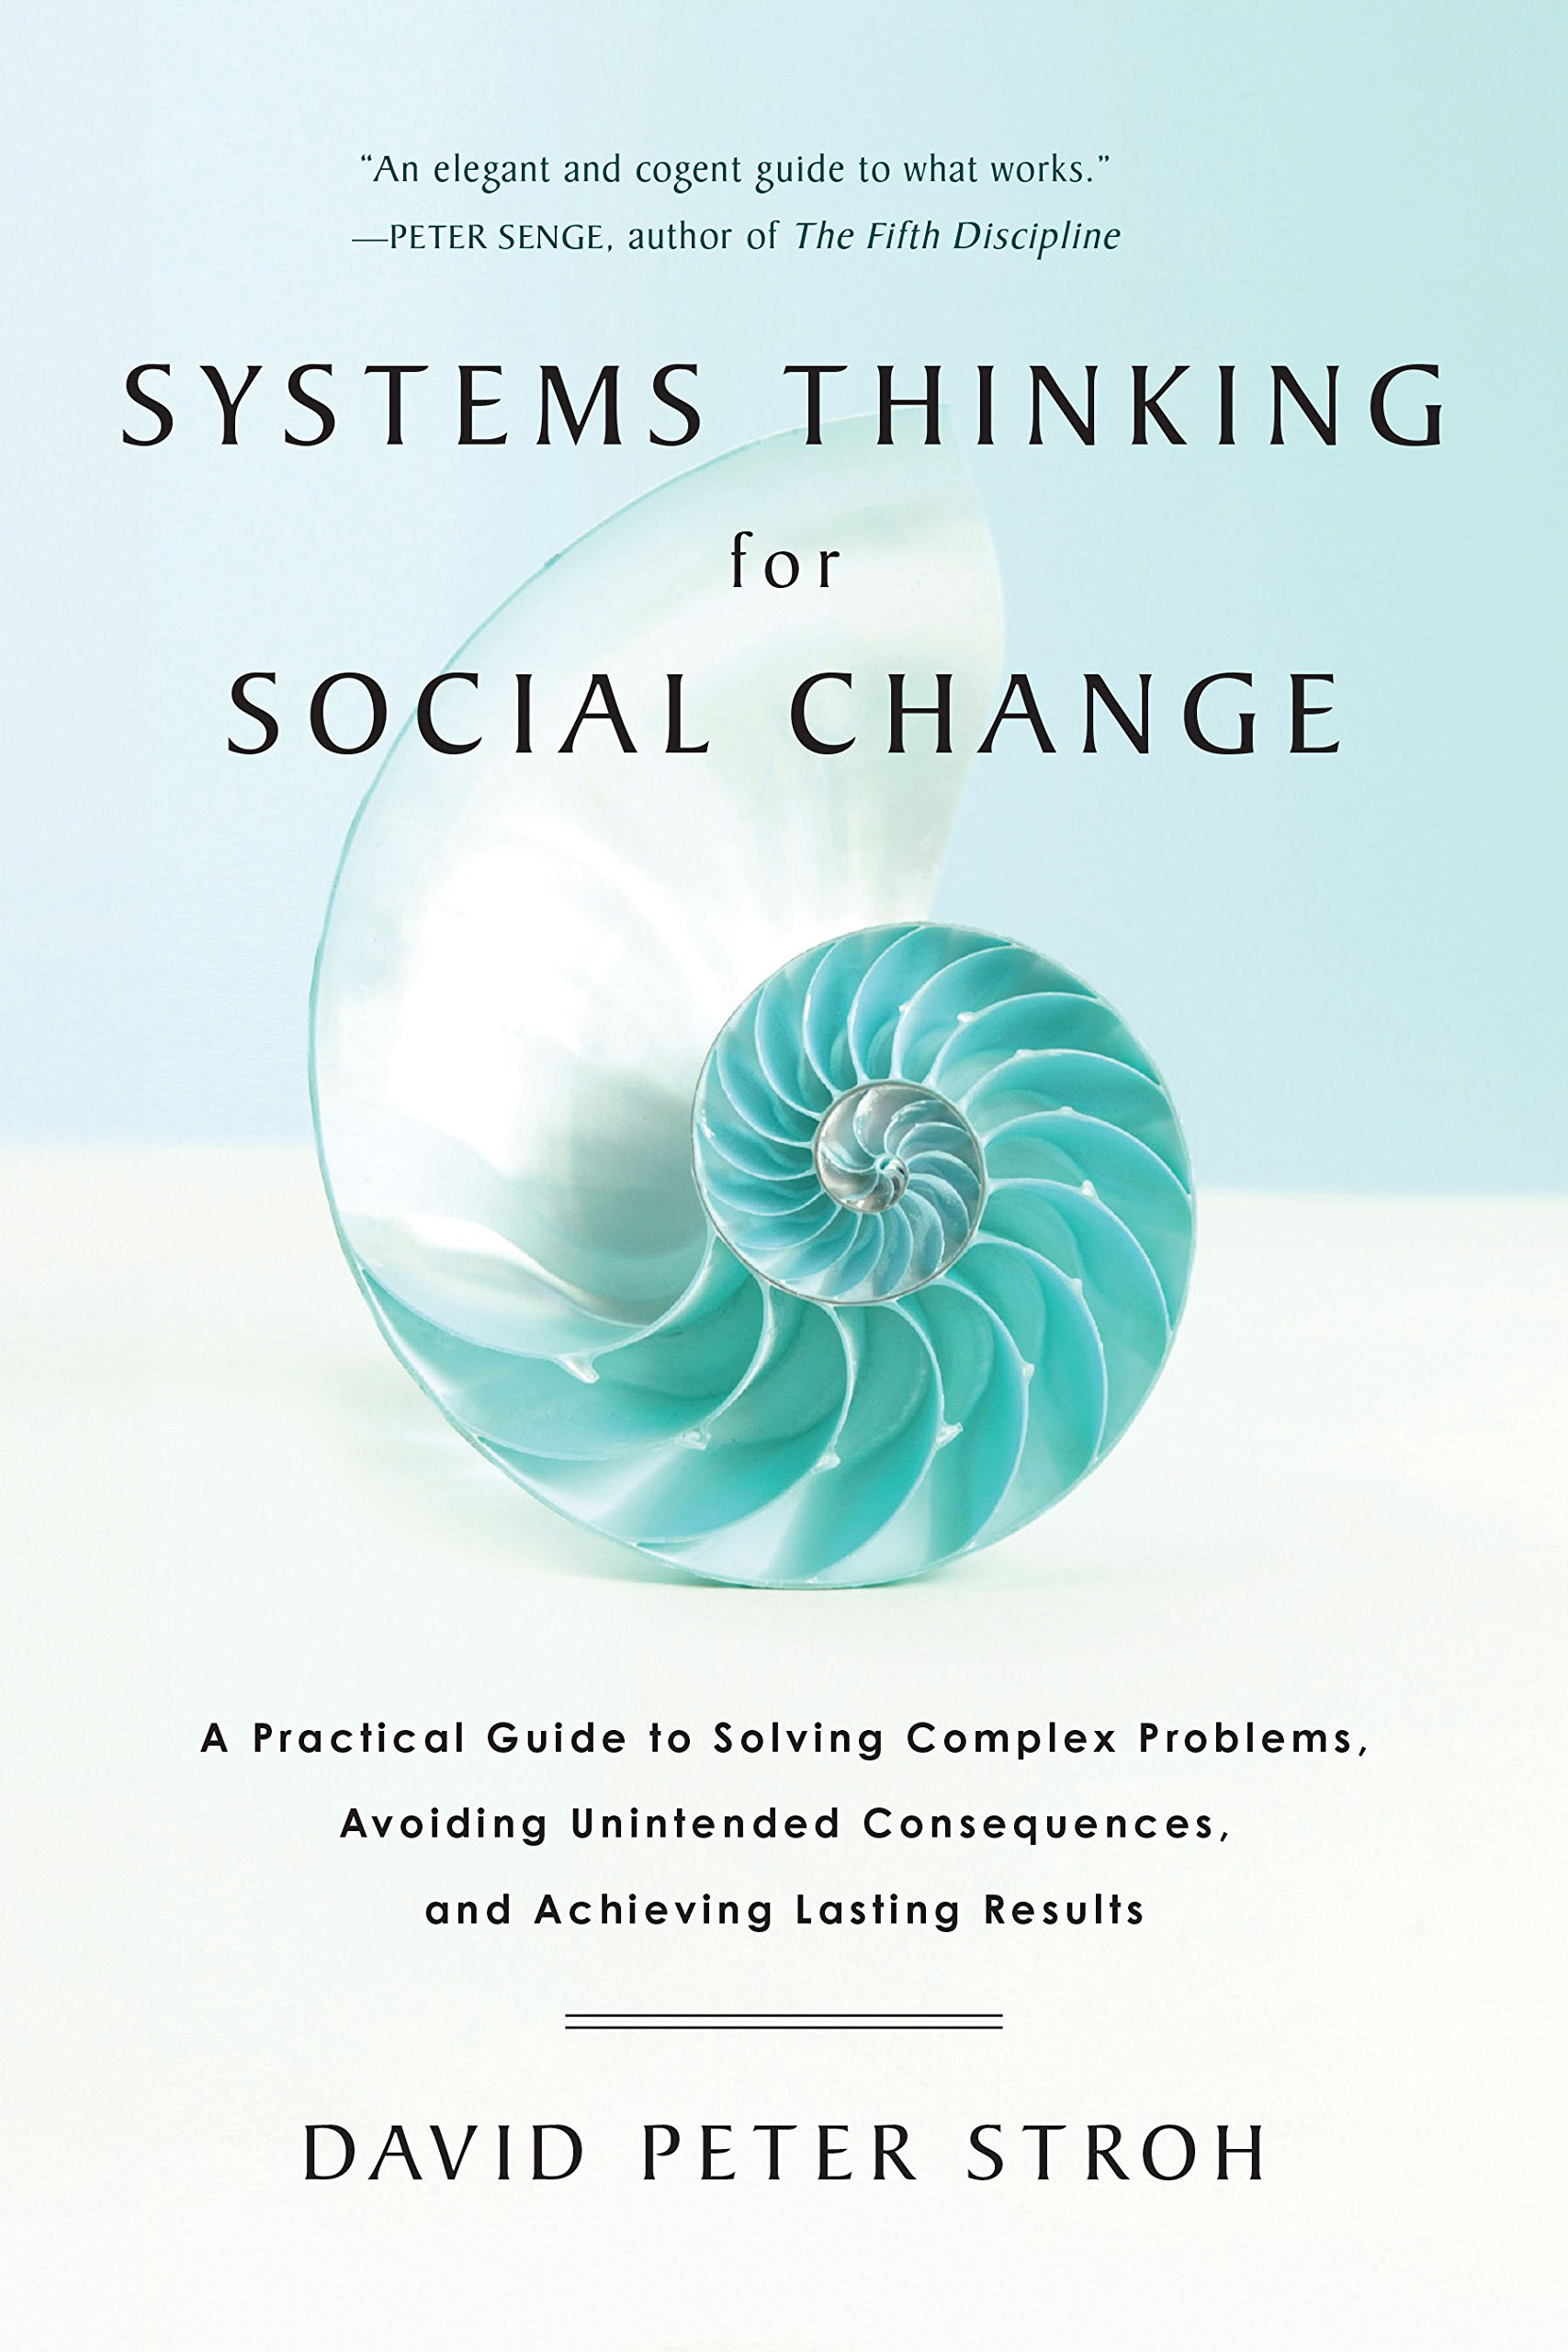 Systems Thinking For Social Change  A Practical Guide To Solving Complex Problems Avoiding Unintended Consequences And Achieving Lasting Results  English Edition